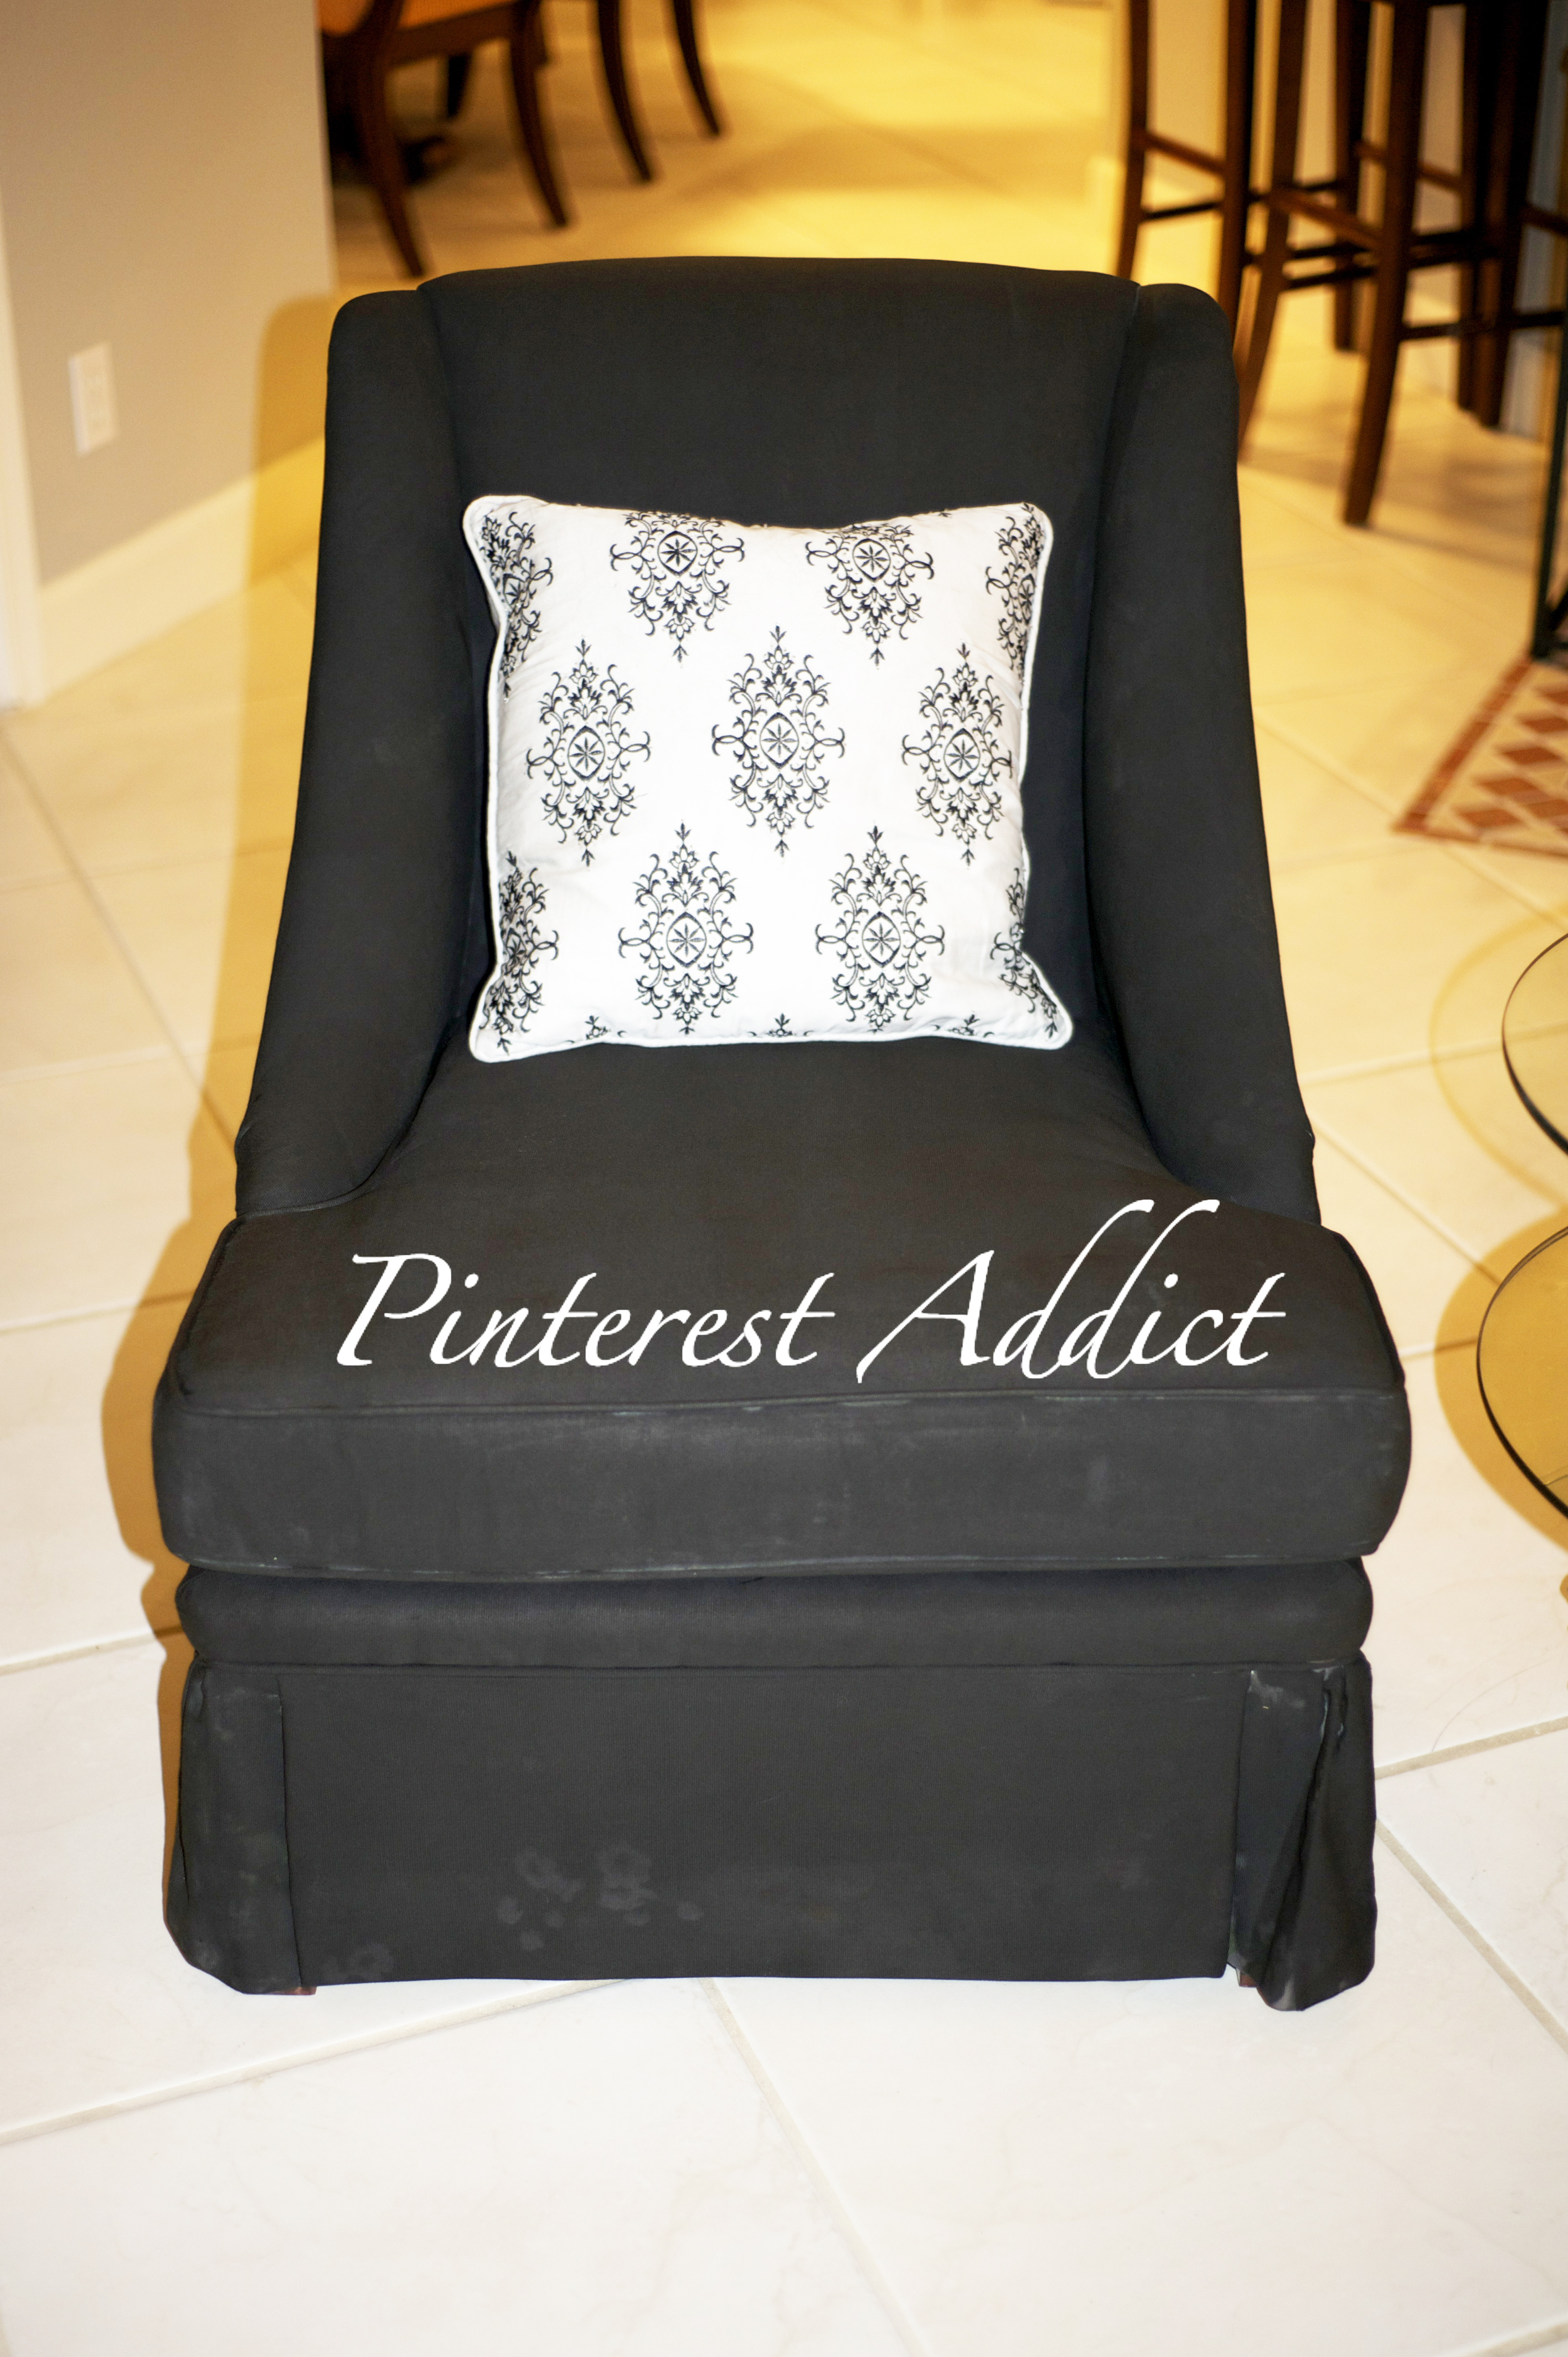 painted chairs a round up by hyphen interiors pinterest addict. Black Bedroom Furniture Sets. Home Design Ideas